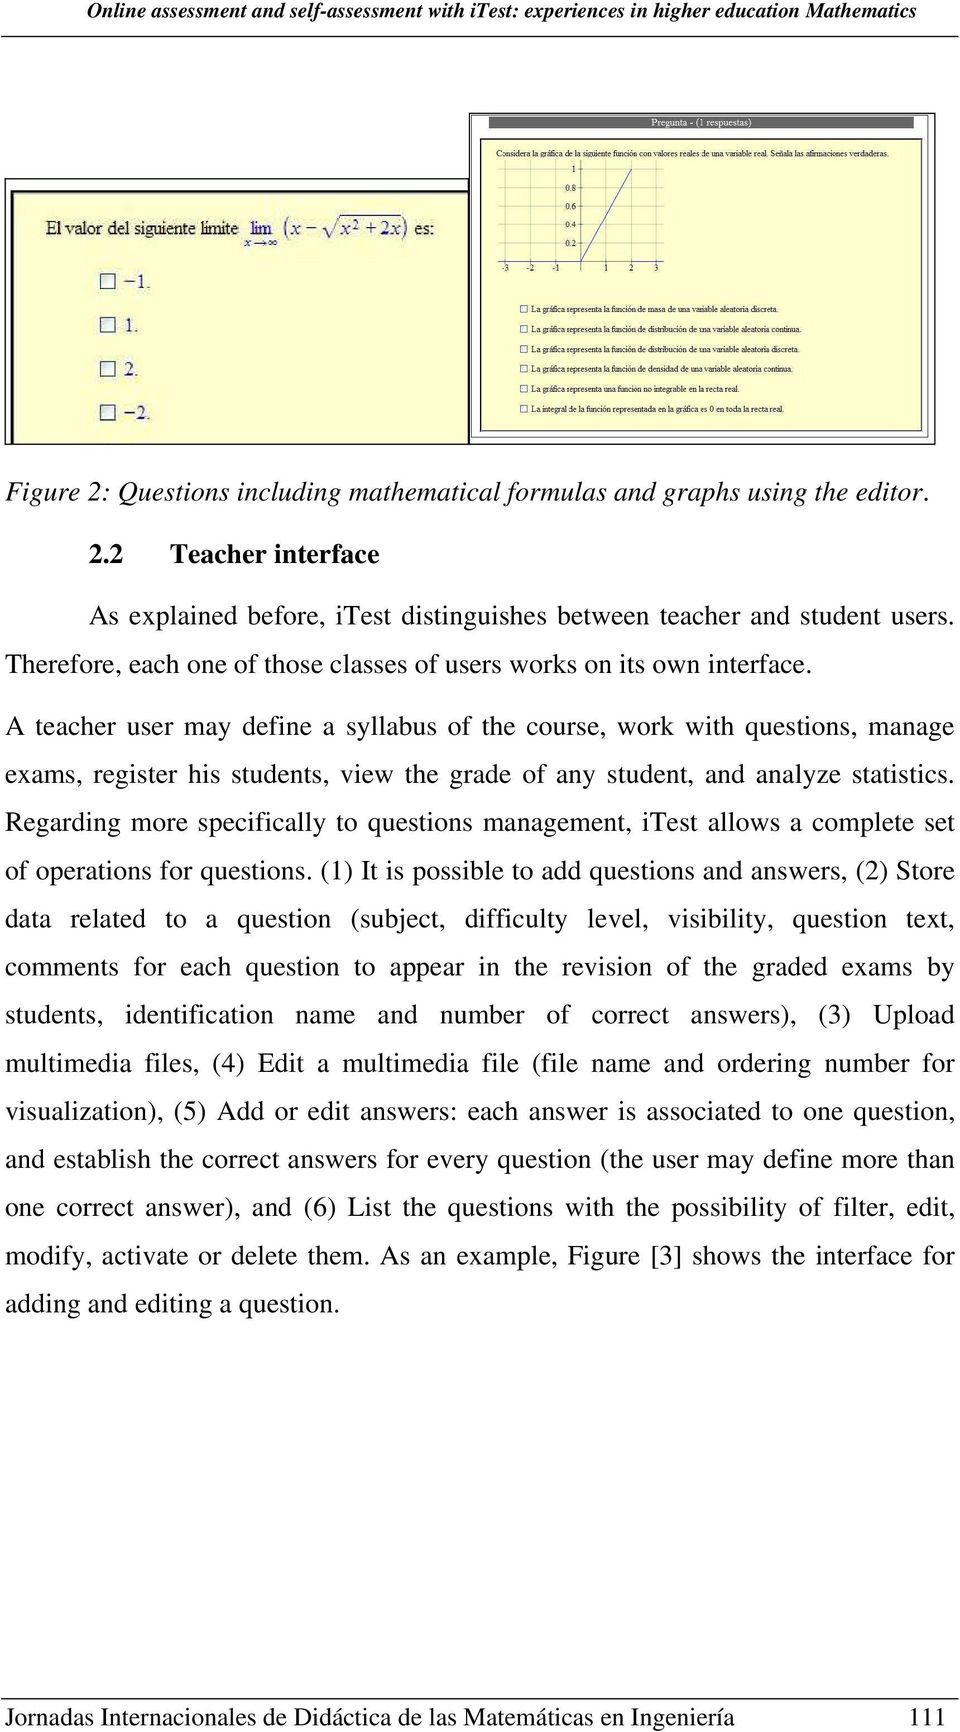 A teacher user may define a syllabus of the course, work with questions, manage exams, register his students, view the grade of any student, and analyze statistics.